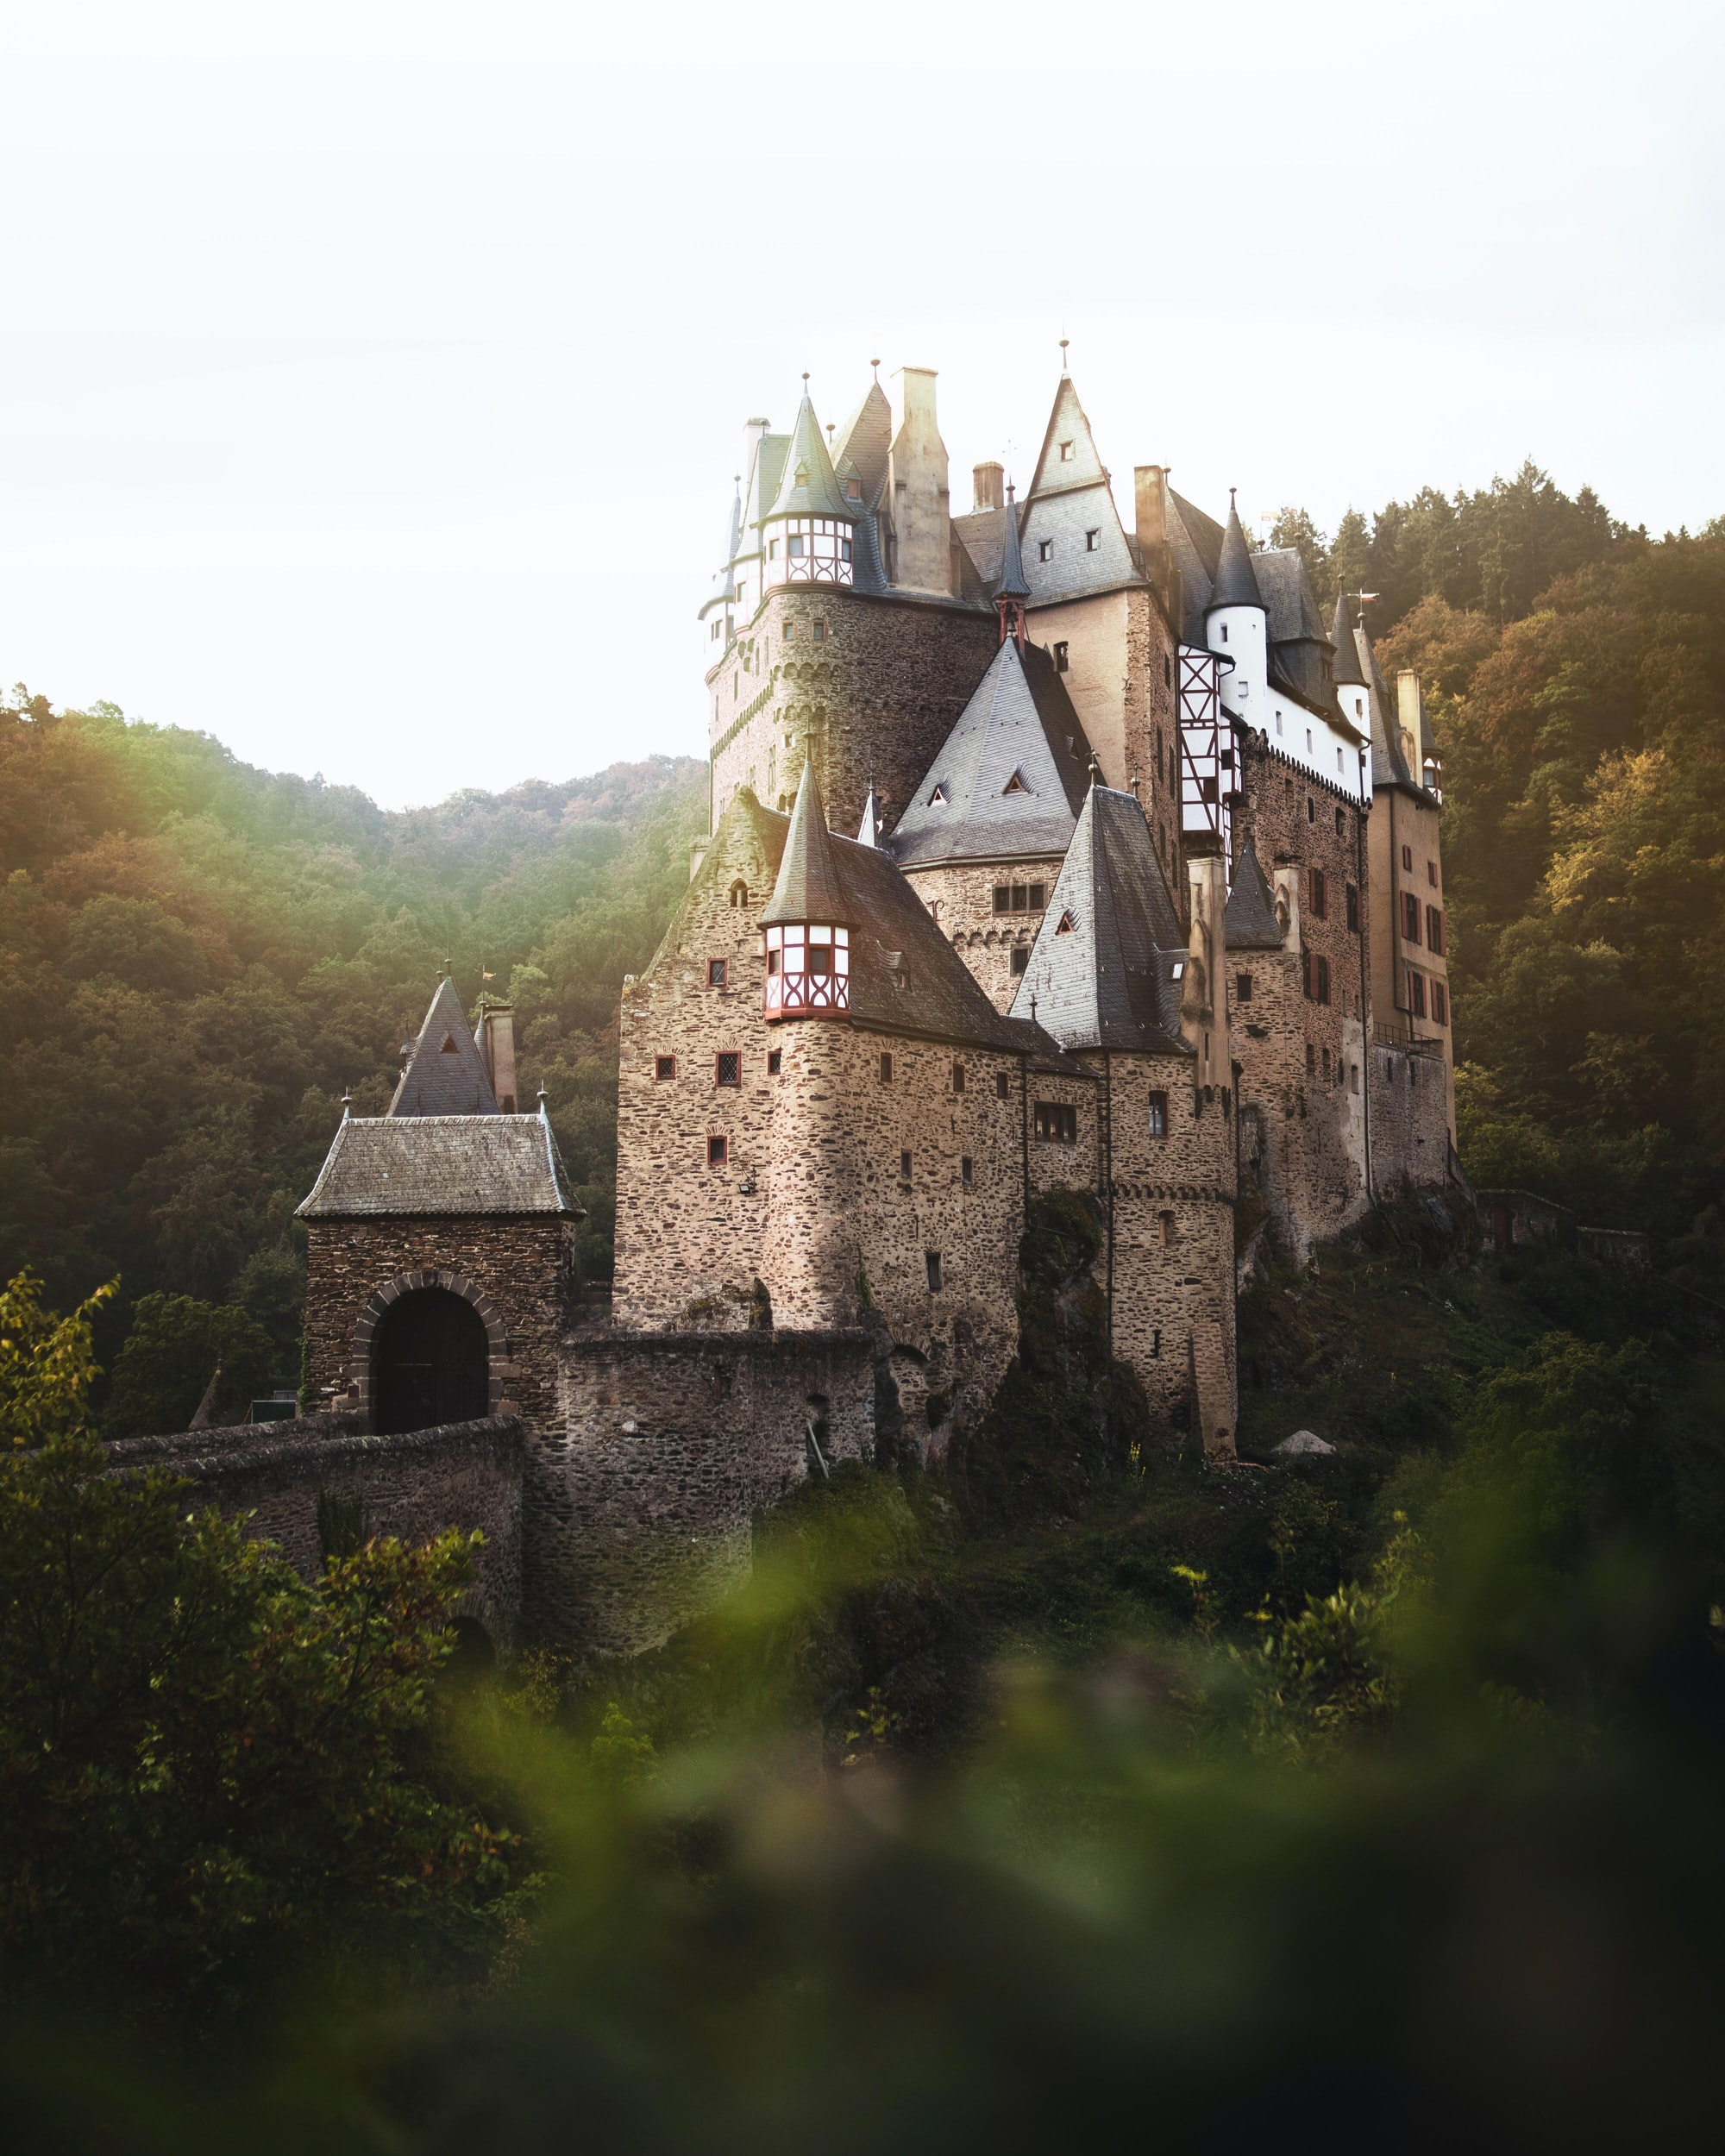 Fairy castle of Europe. @dan.asaki